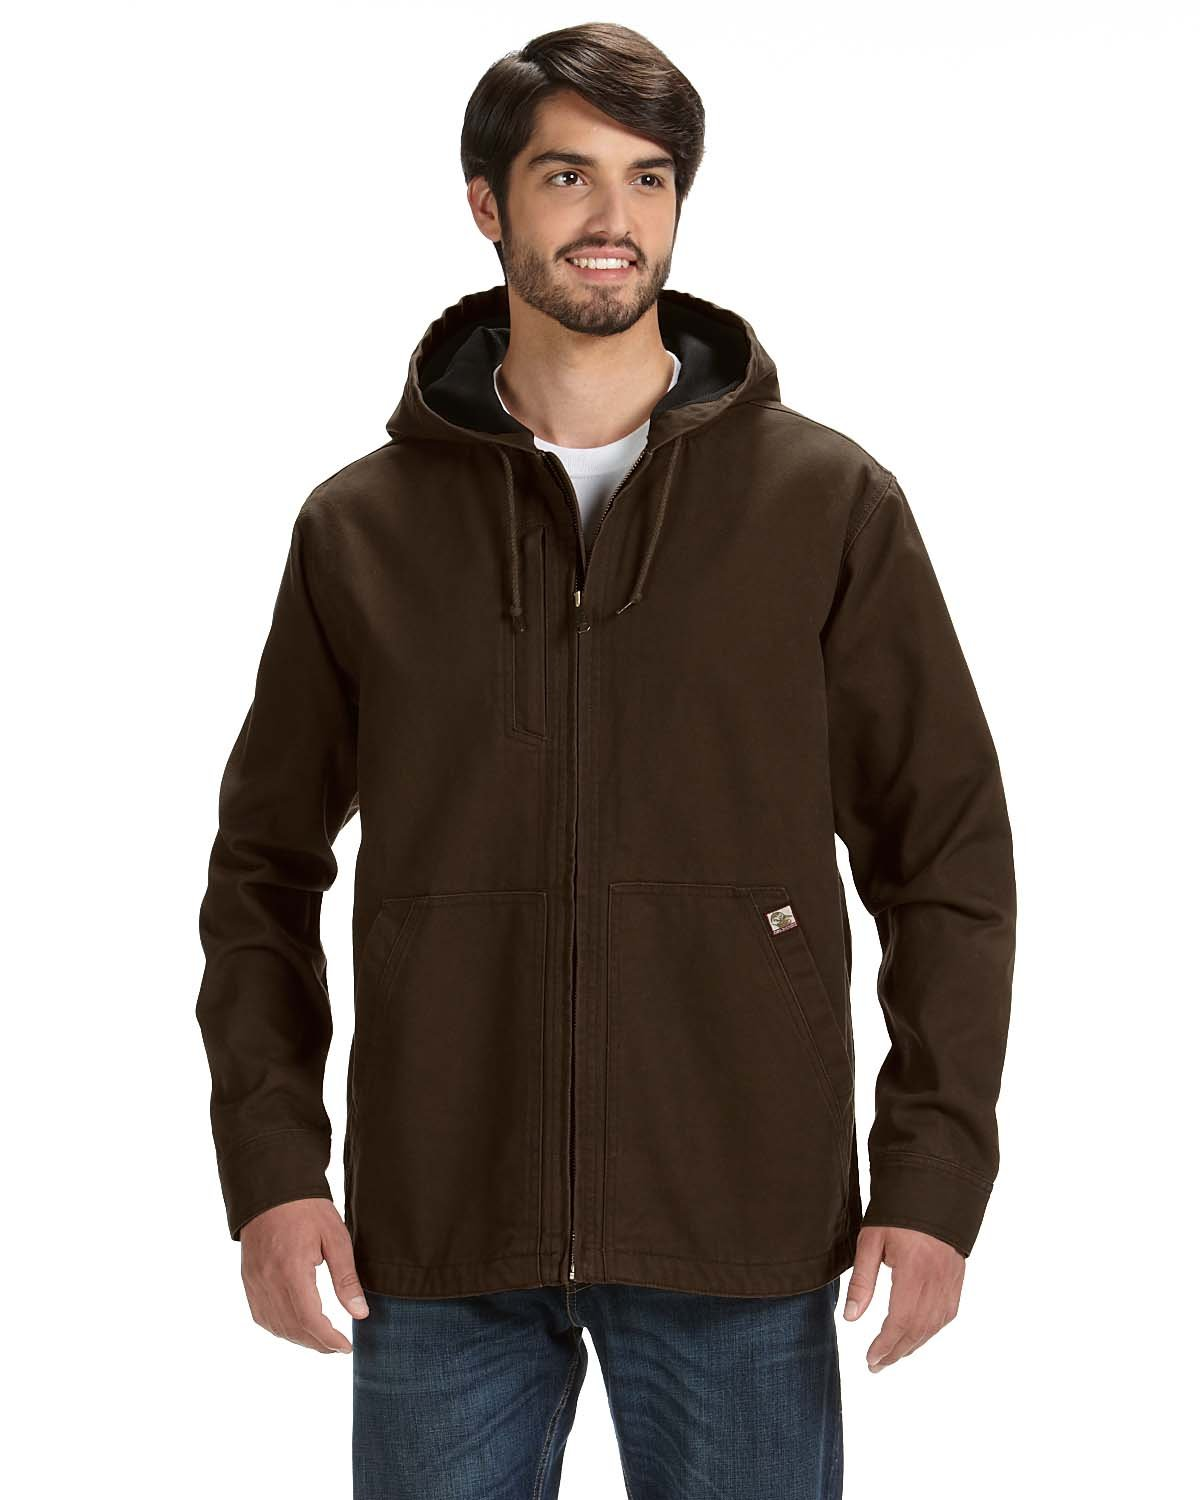 Dri Duck Men's 100% Cotton 12 oz. Canvas/Polyester Thermal Lining Hooded Tall Laredo Jacket TOBACCO